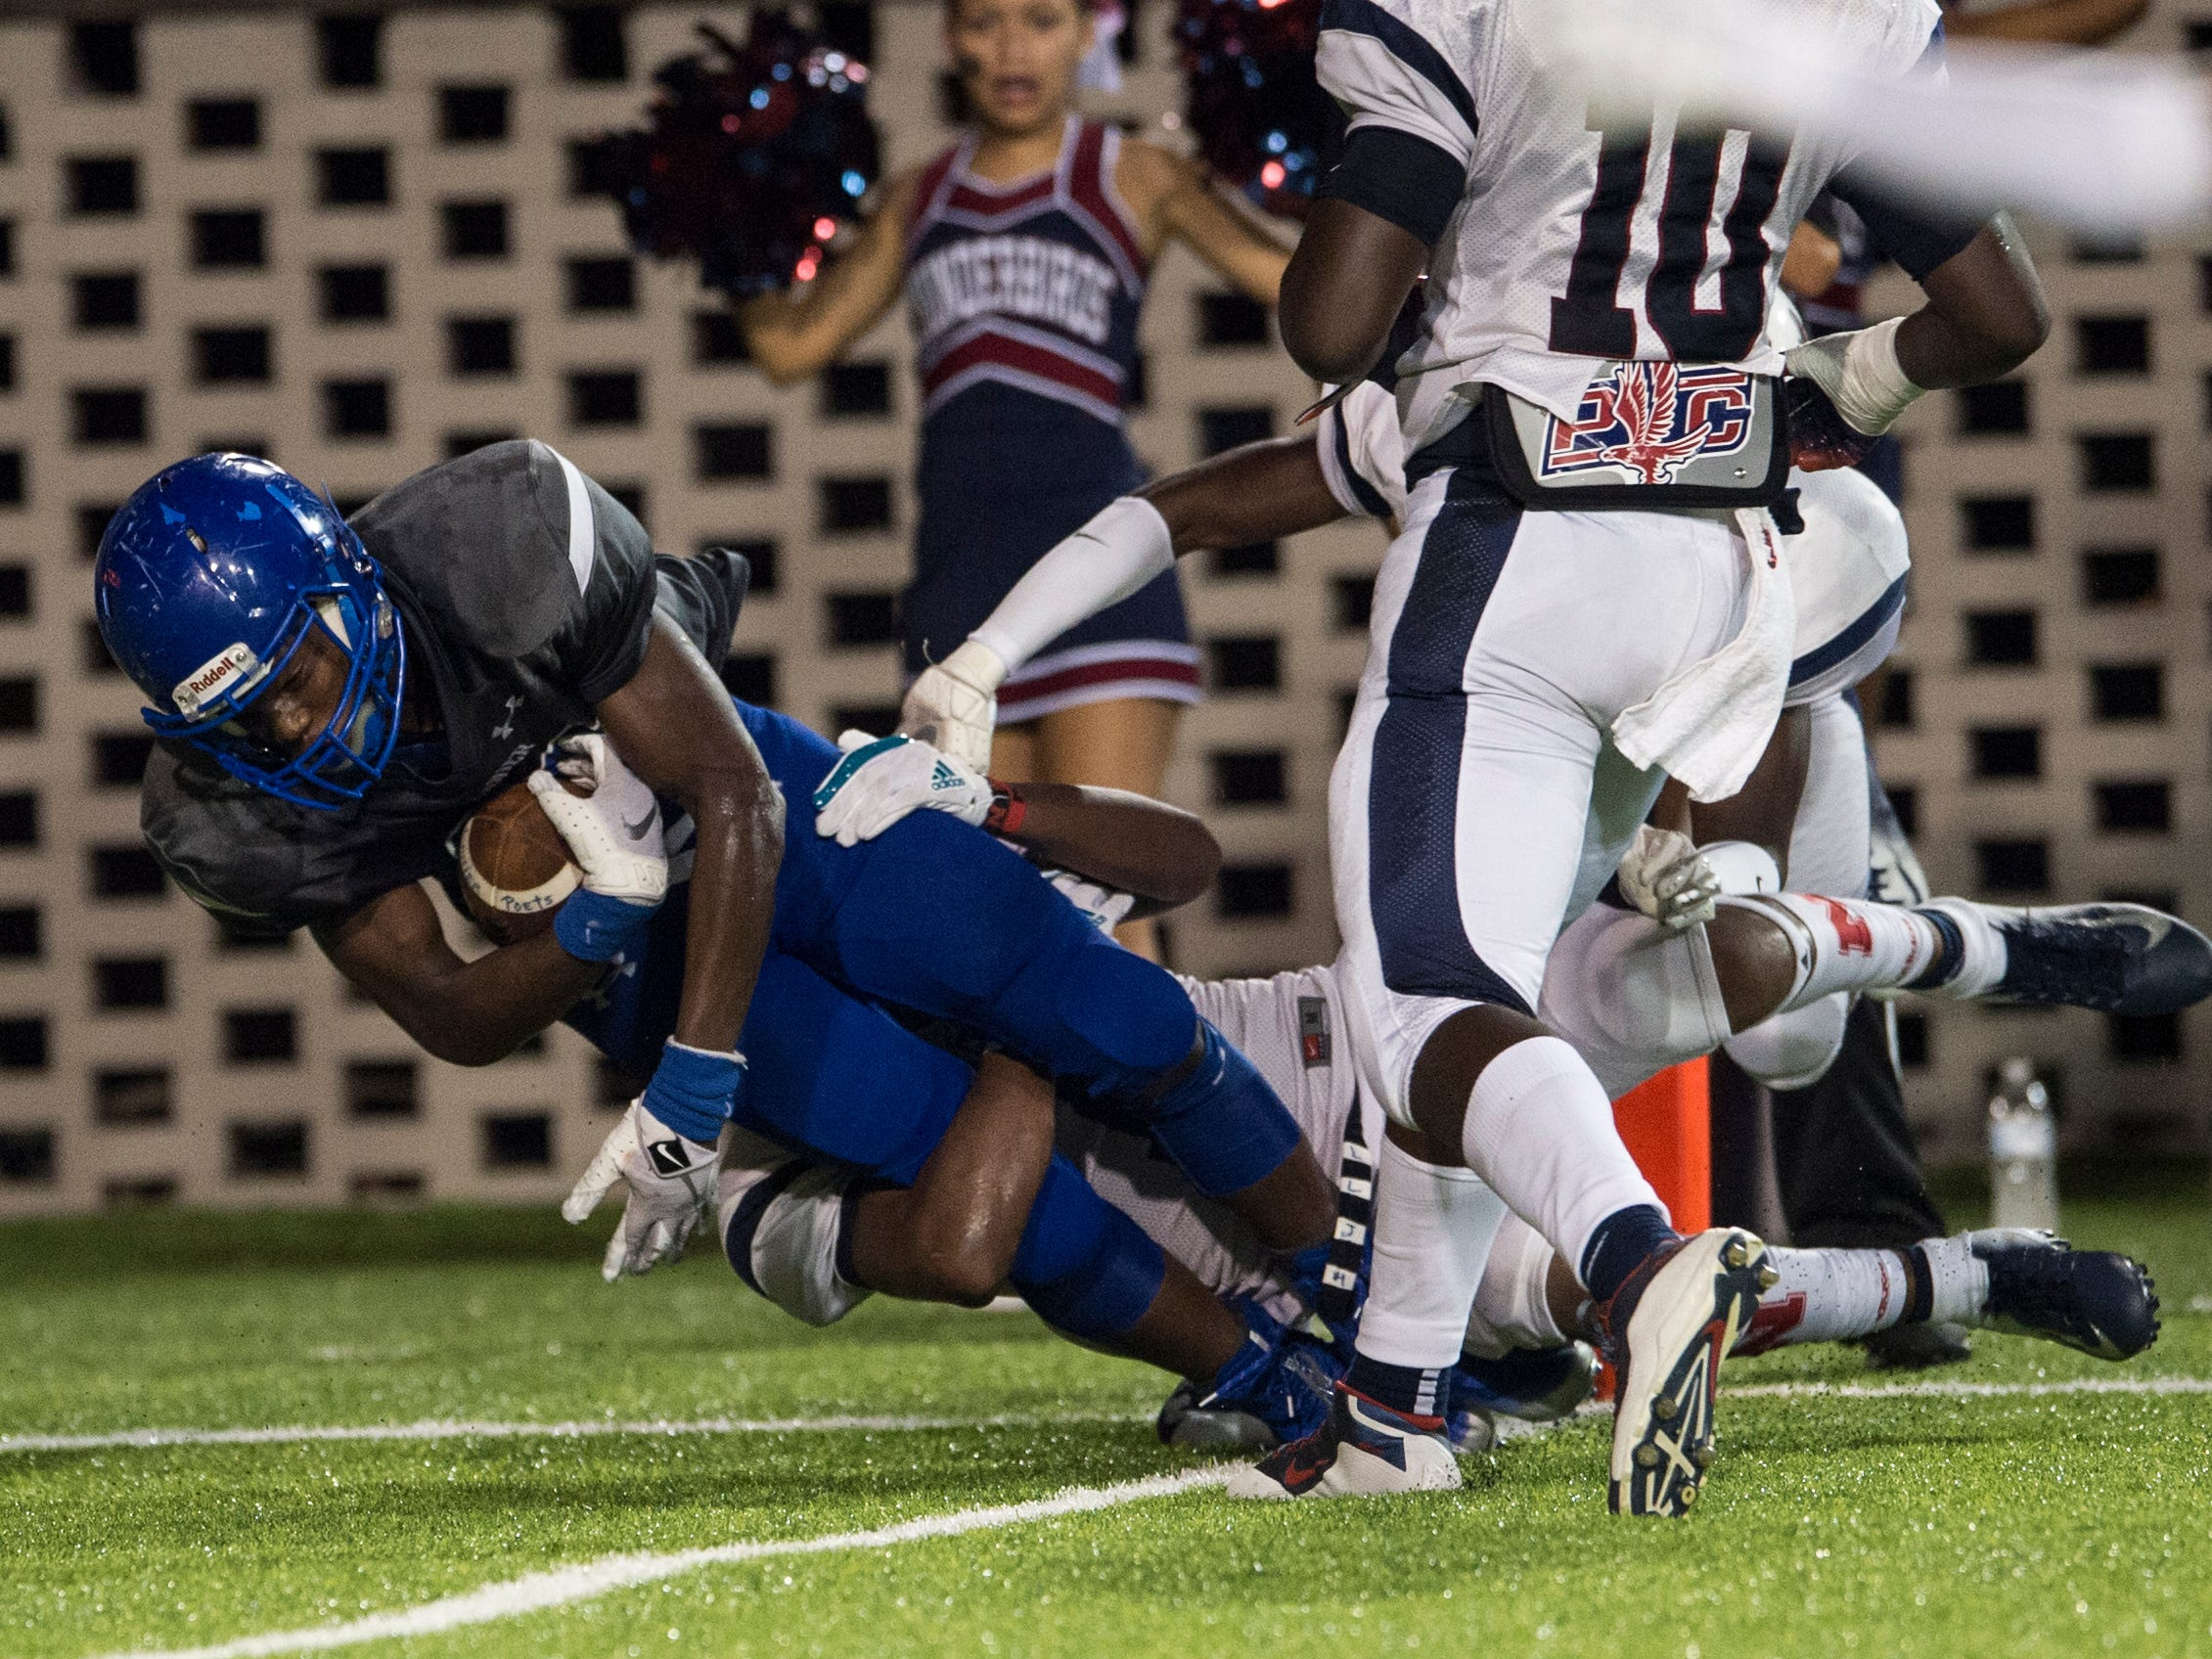 Lanier's Jacory Merritt (15) falls into the end zone for a touchdown against Park Crossing at Cramton Bowl in Montgomery, Ala., on Friday, Sept. 21, 2018. Lanier defeated Park Crossing 35-28.